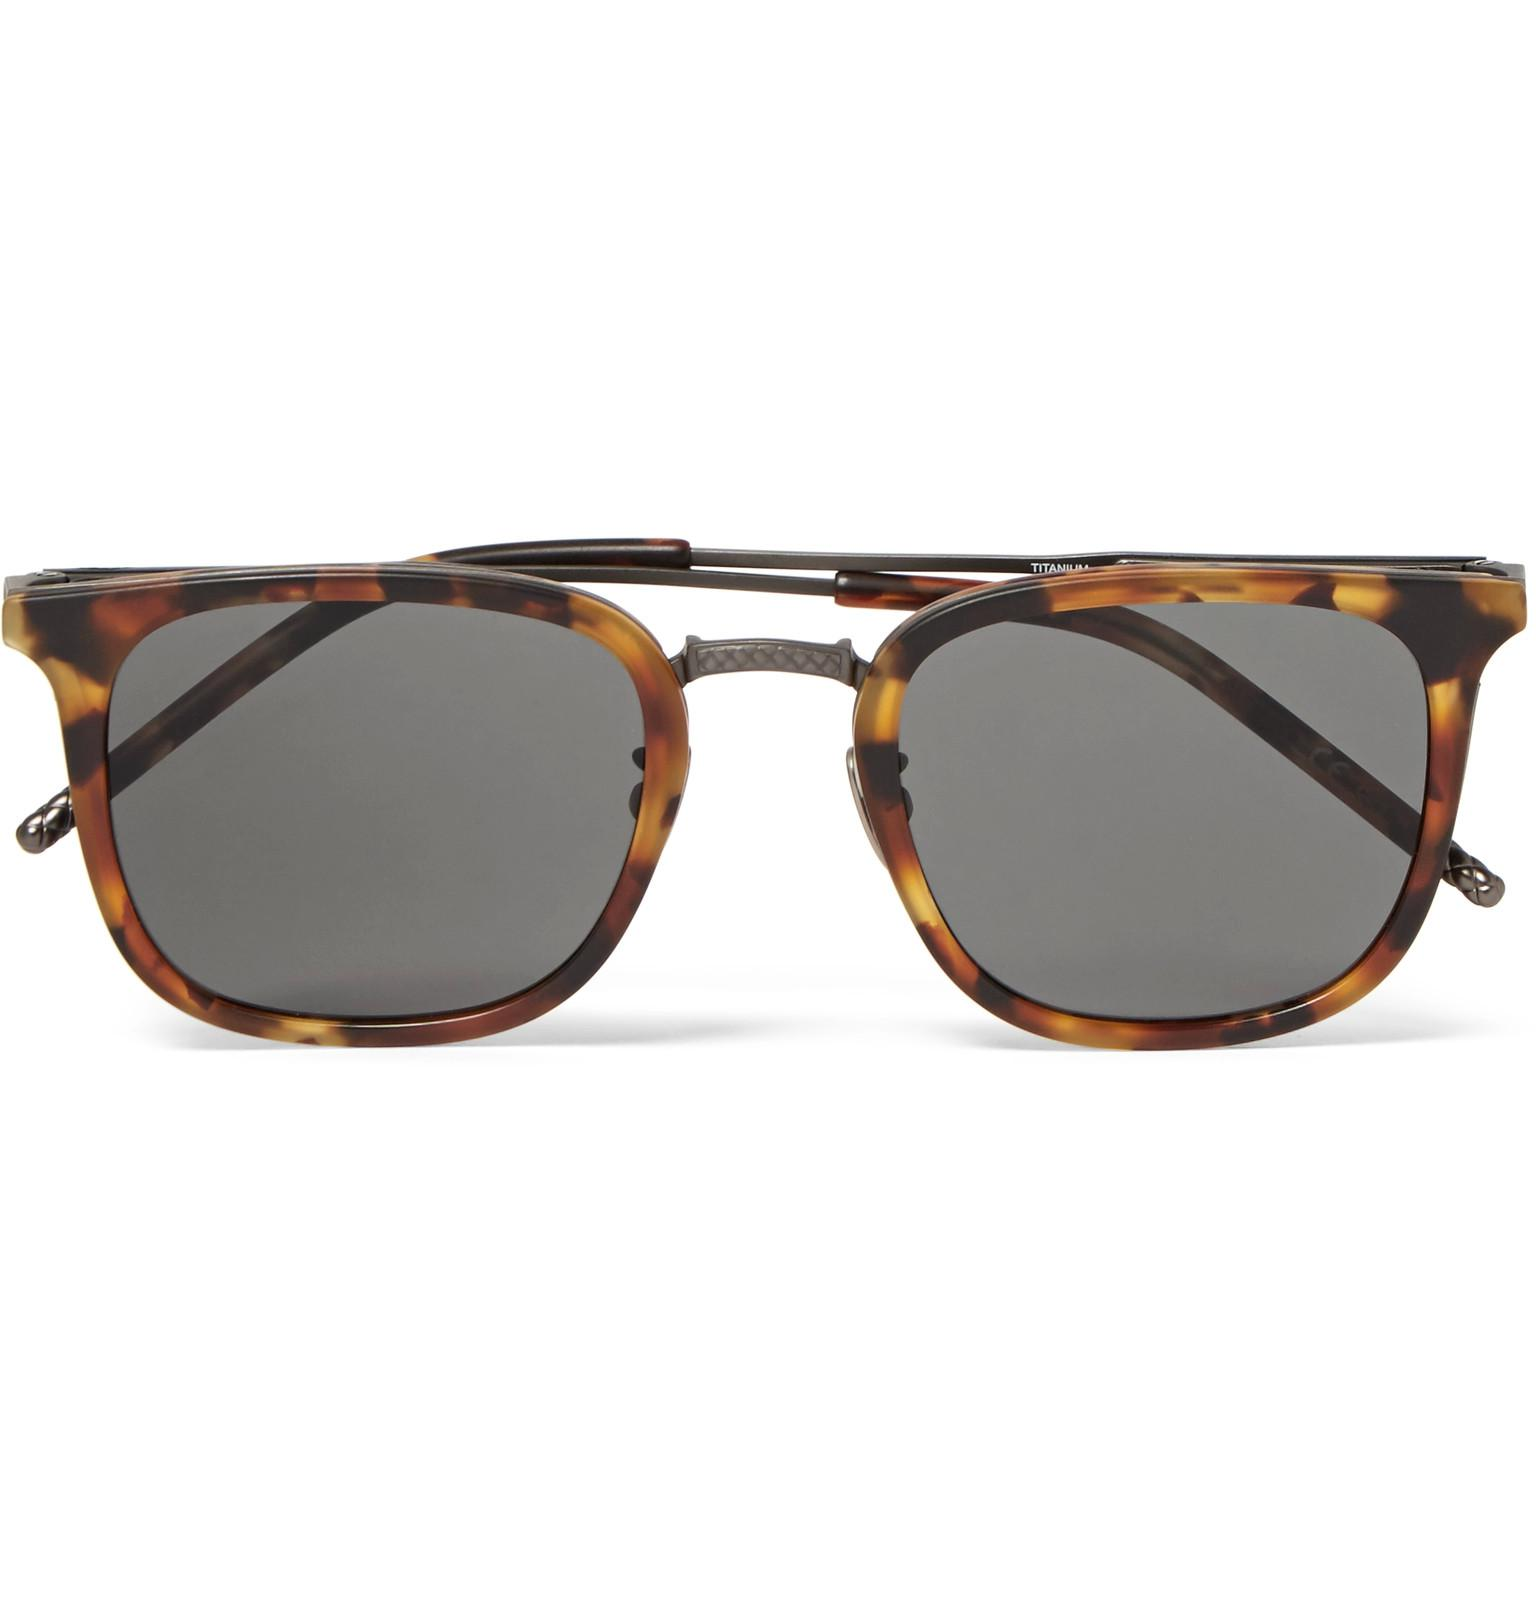 D-frame Acetate And Gold-tone Sunglasses - Brown Rag & Bone MFrgbnG9